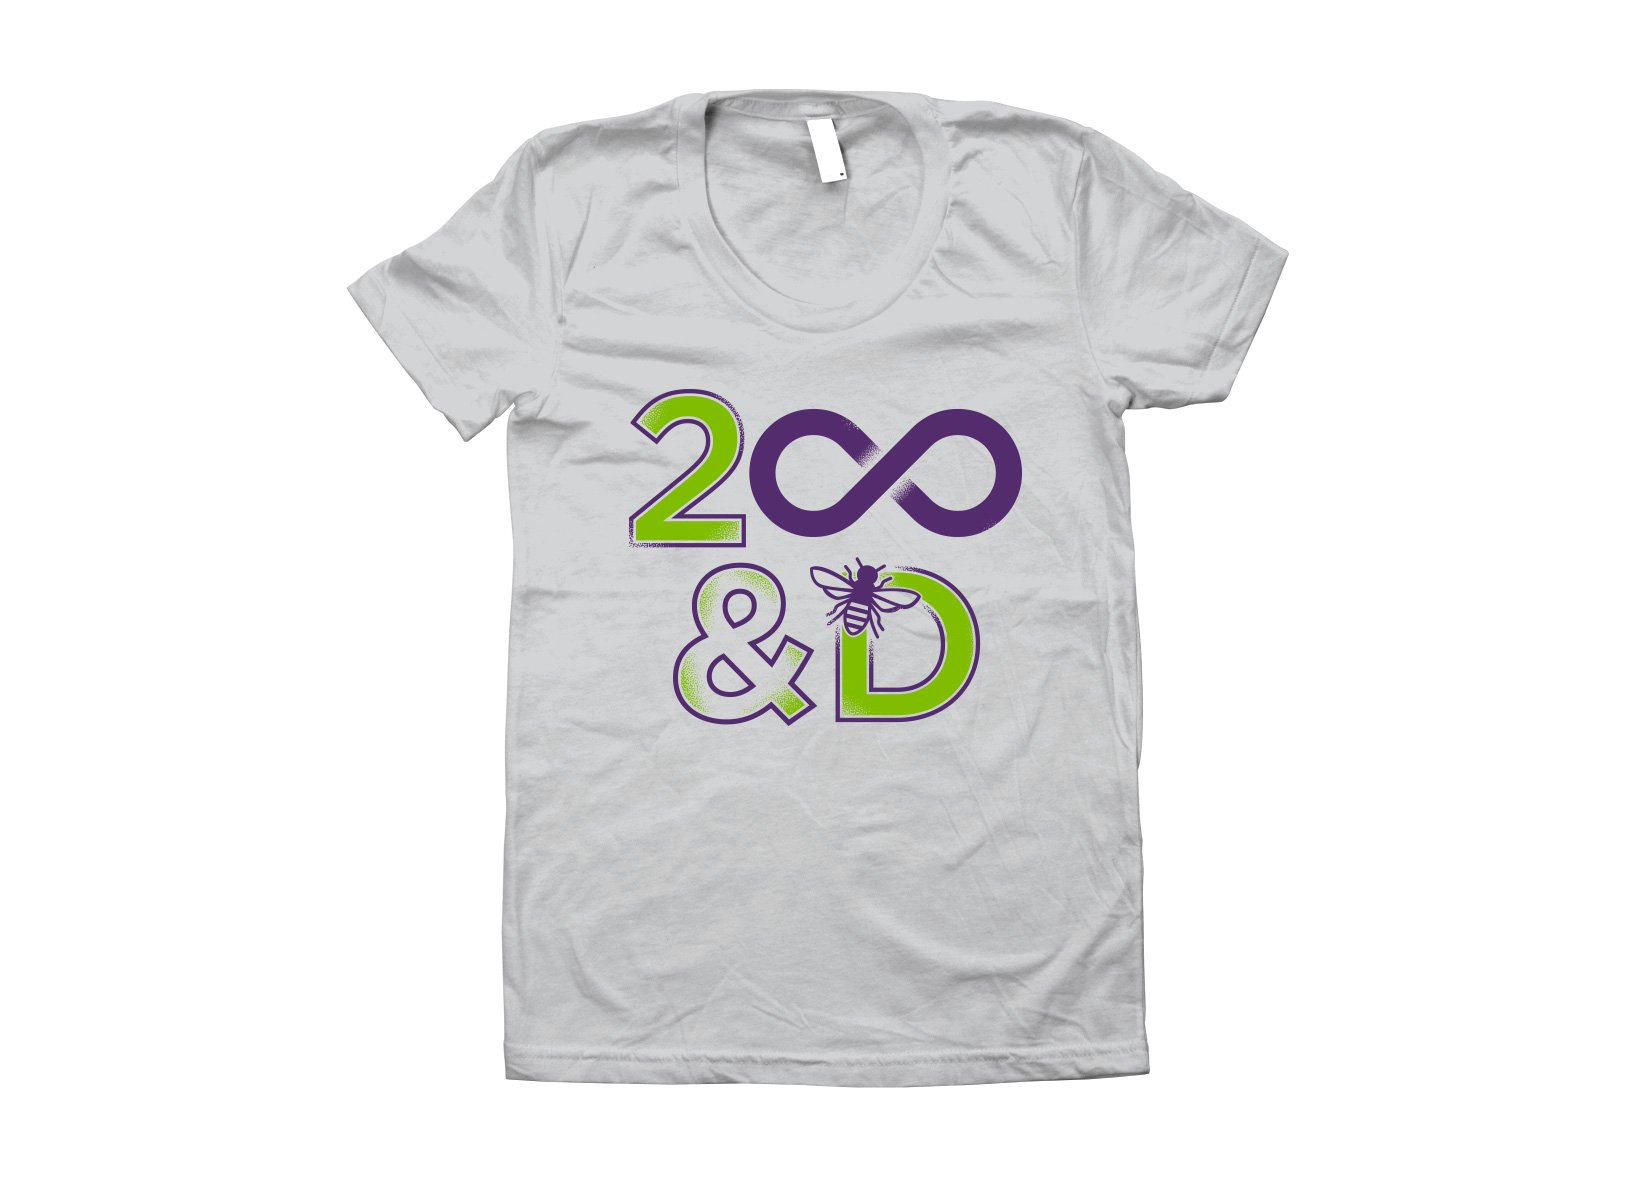 2 Infinity And B On D on Juniors T-Shirt